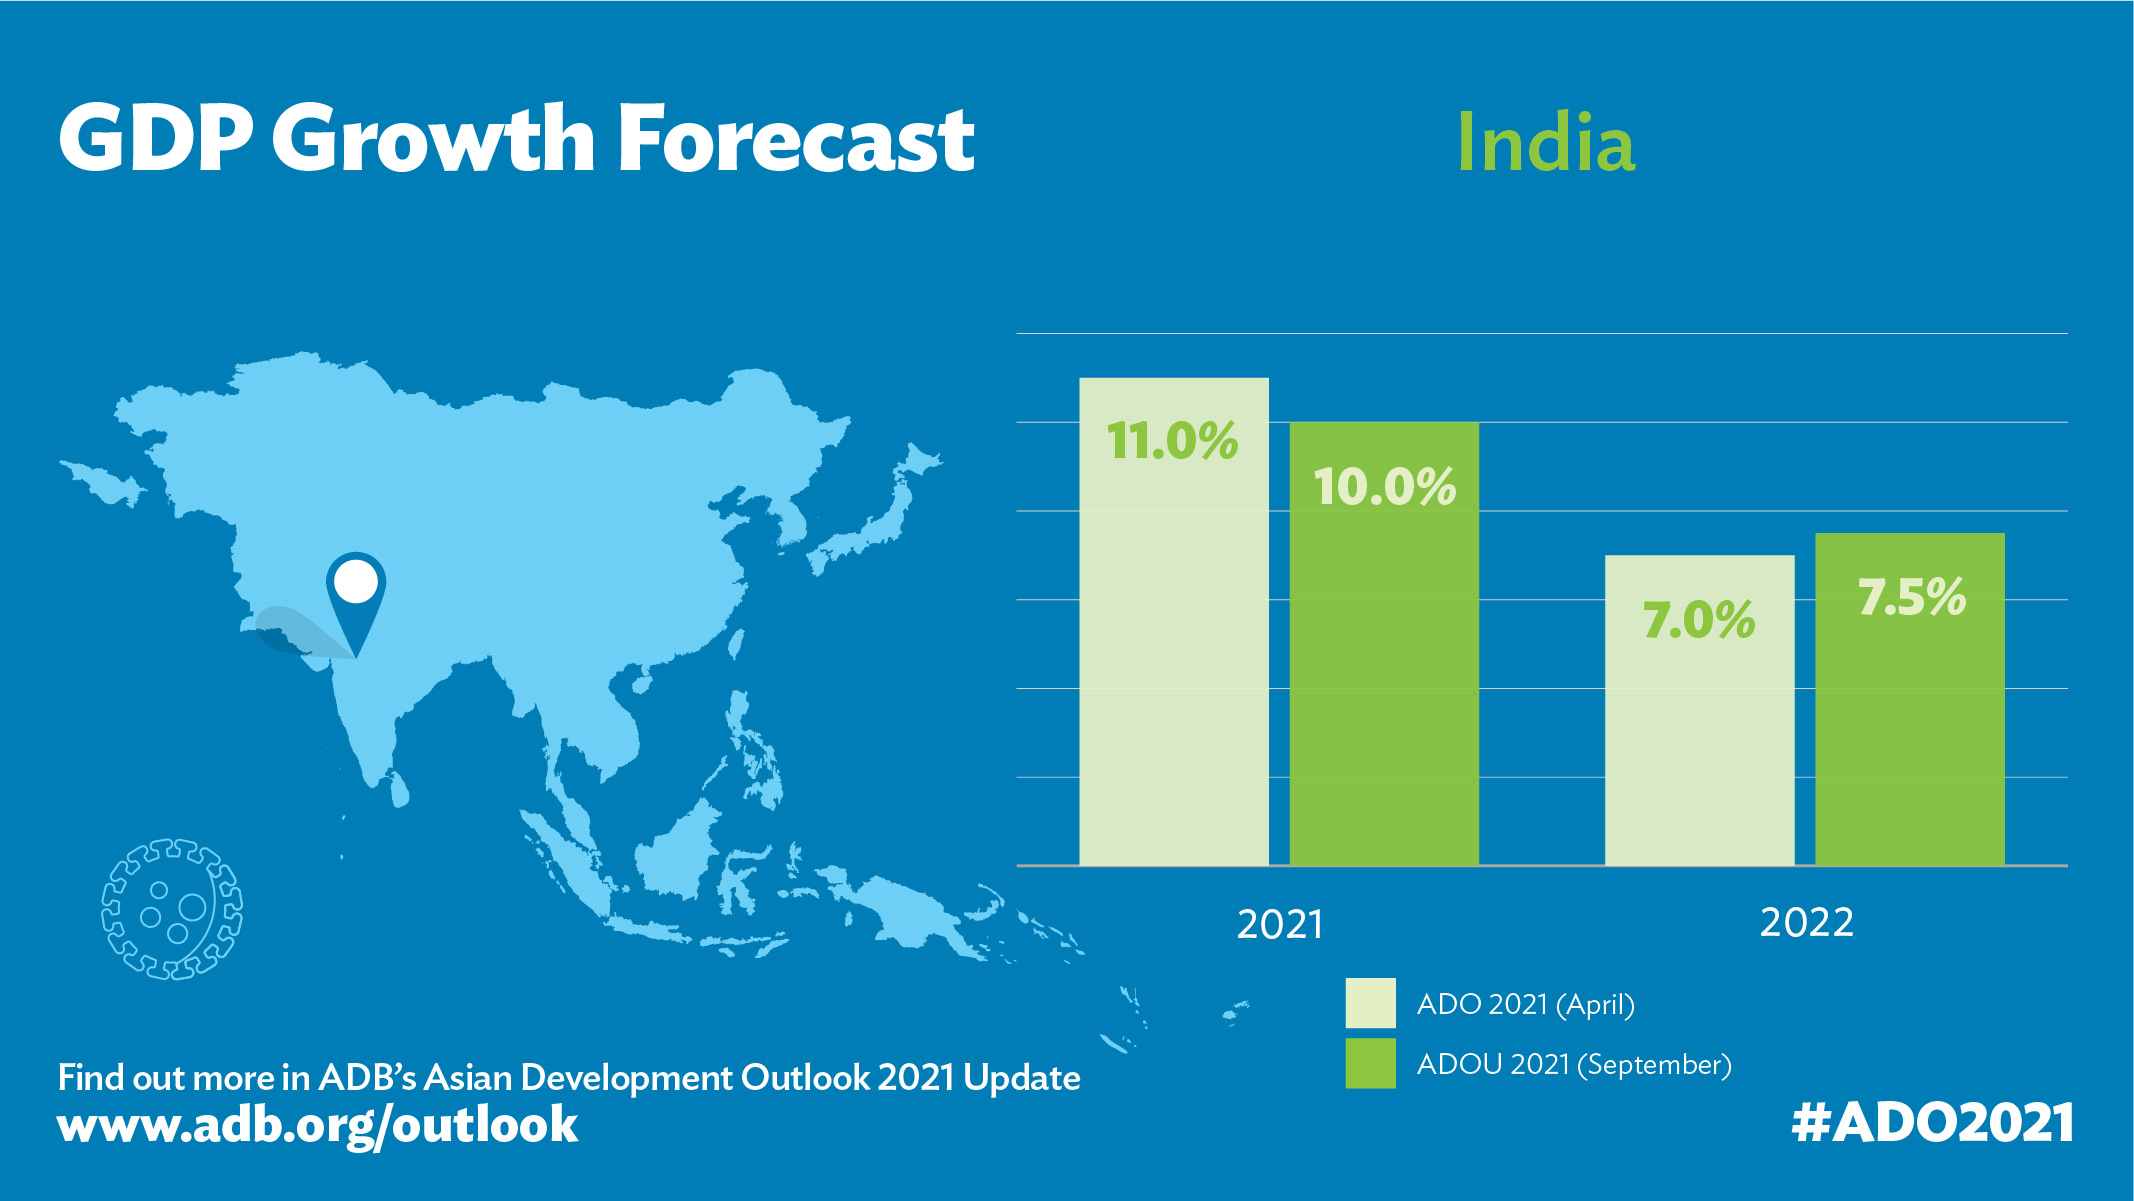 India's Growth to Rebound to 10% in FY2021, Moderate to 7.5% in FY2022